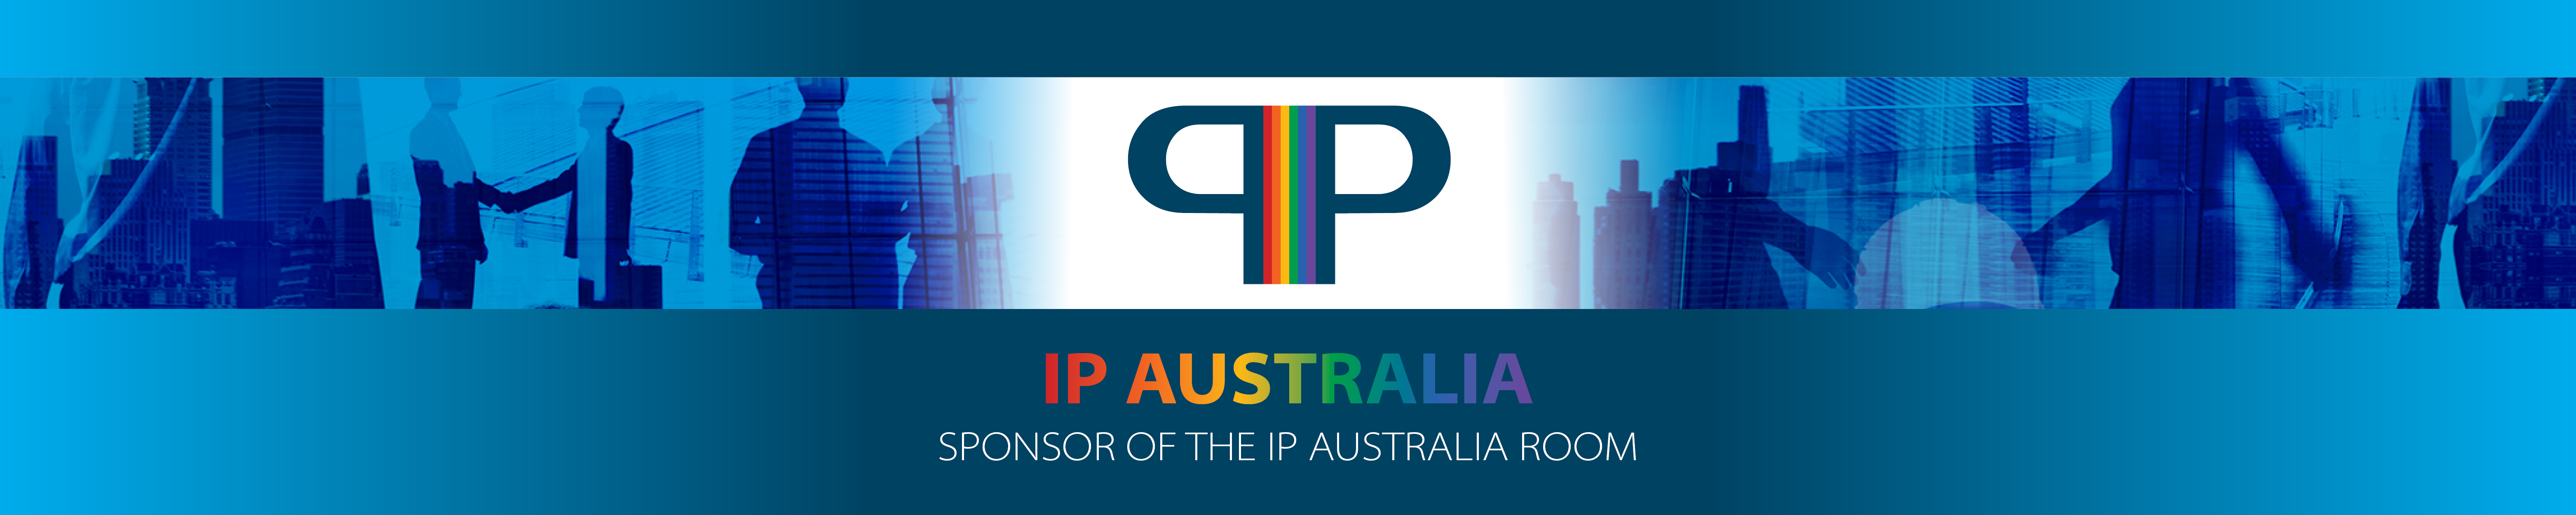 PIP_Conference_IP_Aust_RoomSponsor4